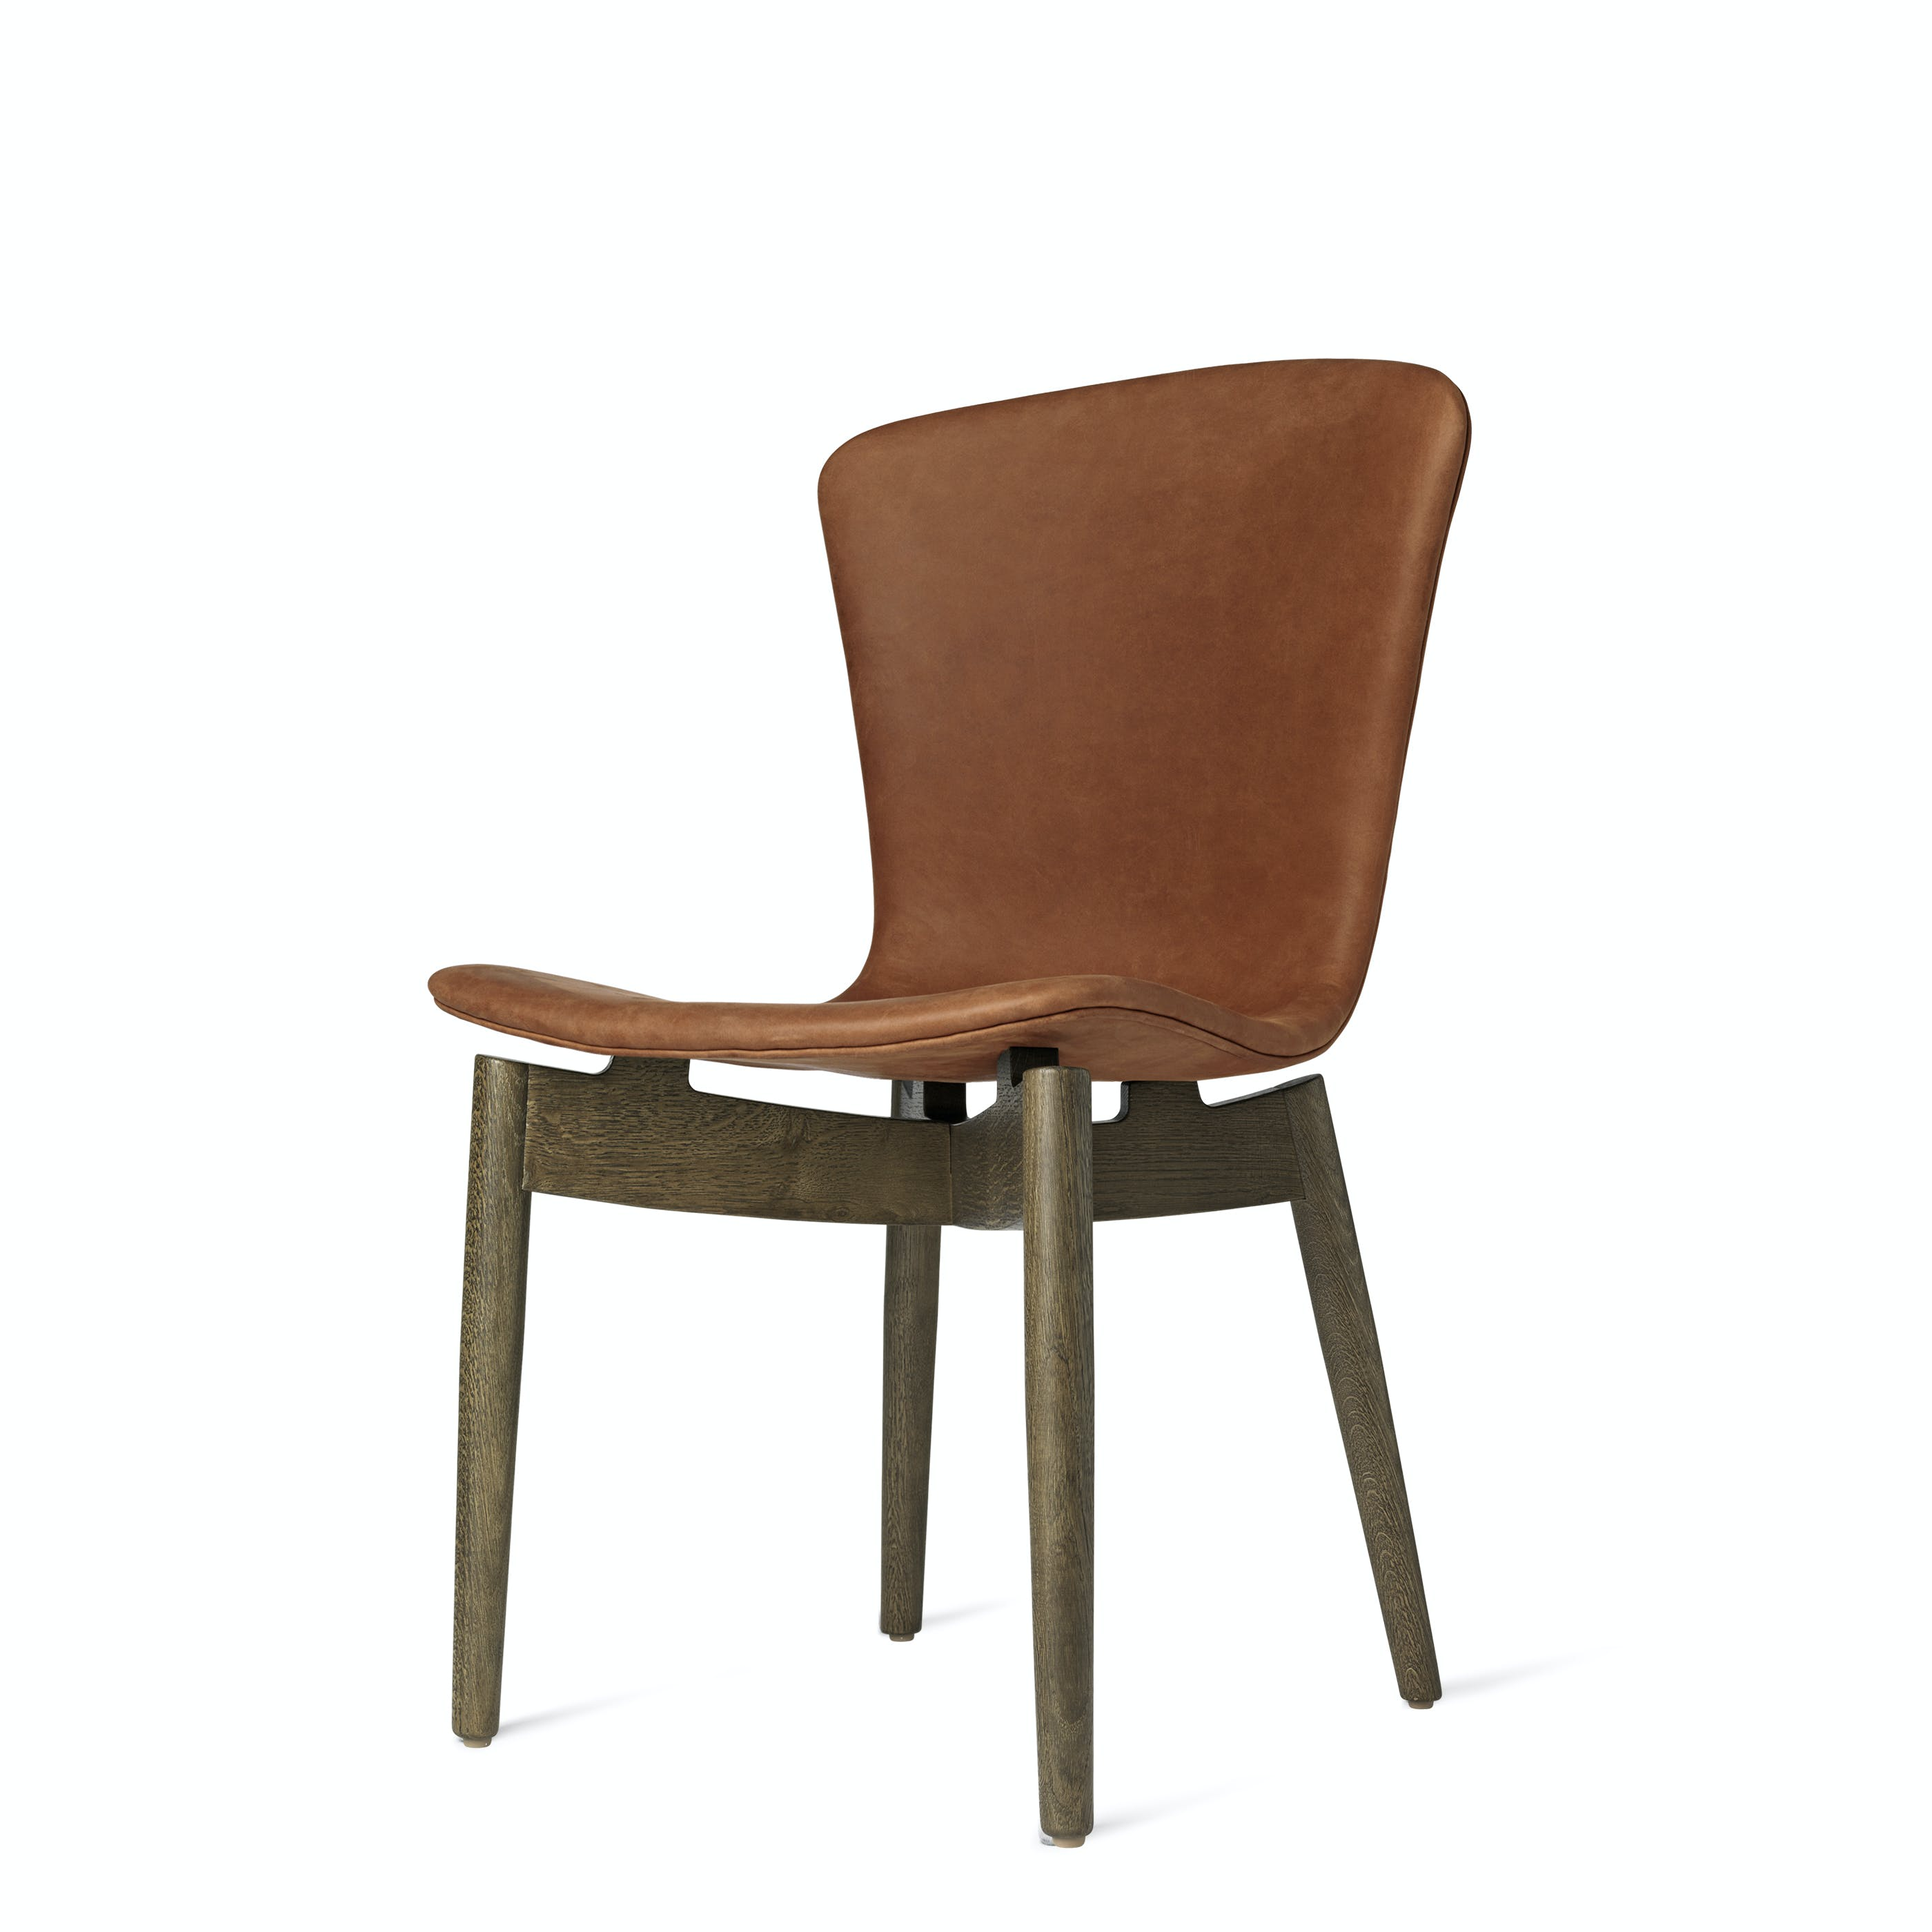 Mater Rust Shell Dining Chair Stained Oak Legs Haute Living